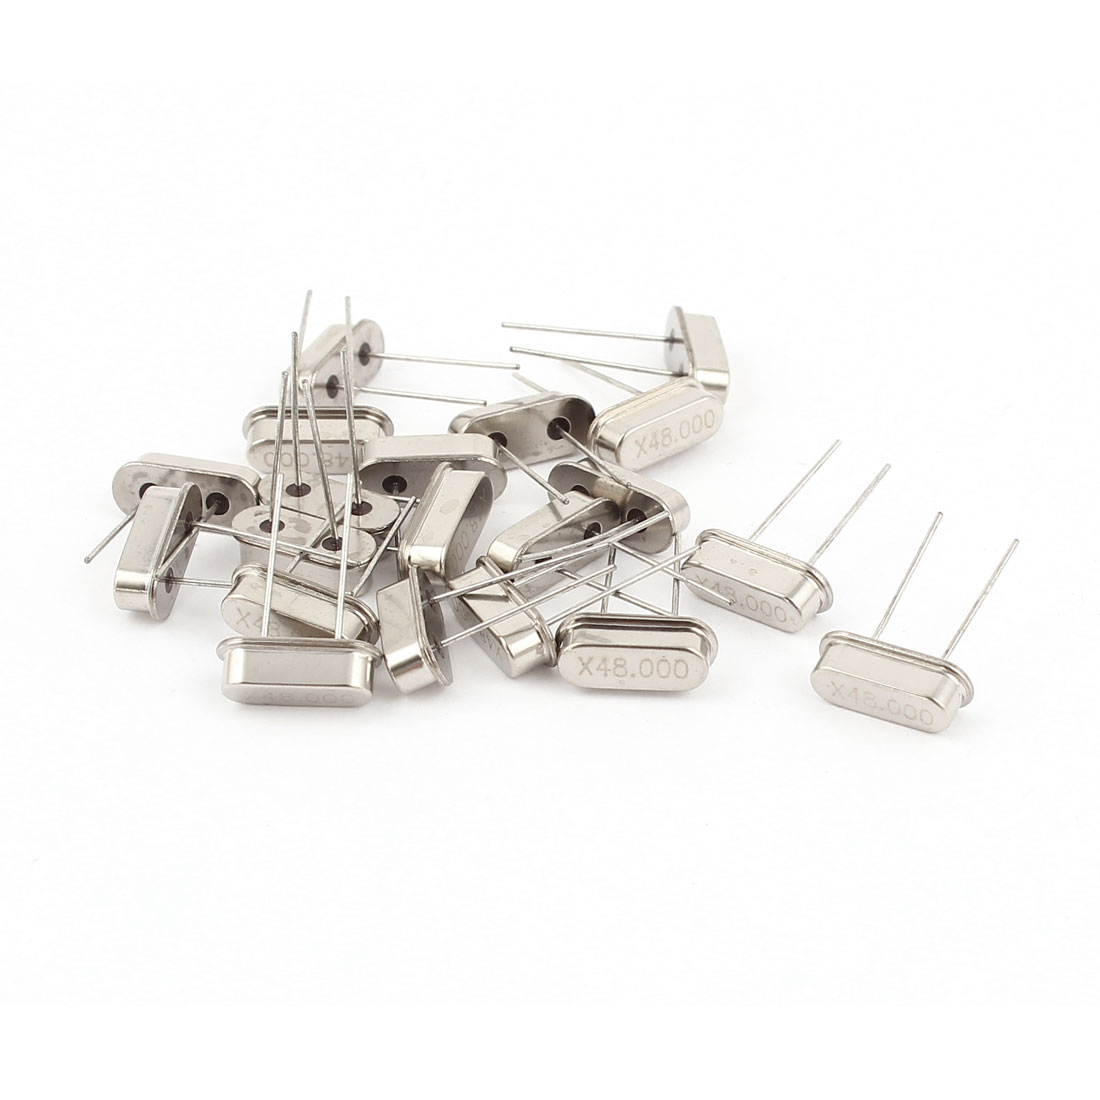 20 Pcs Low Profile 48MHZ 48.000MHZ Quartz Crystal Oscillator HC-49S Replacements